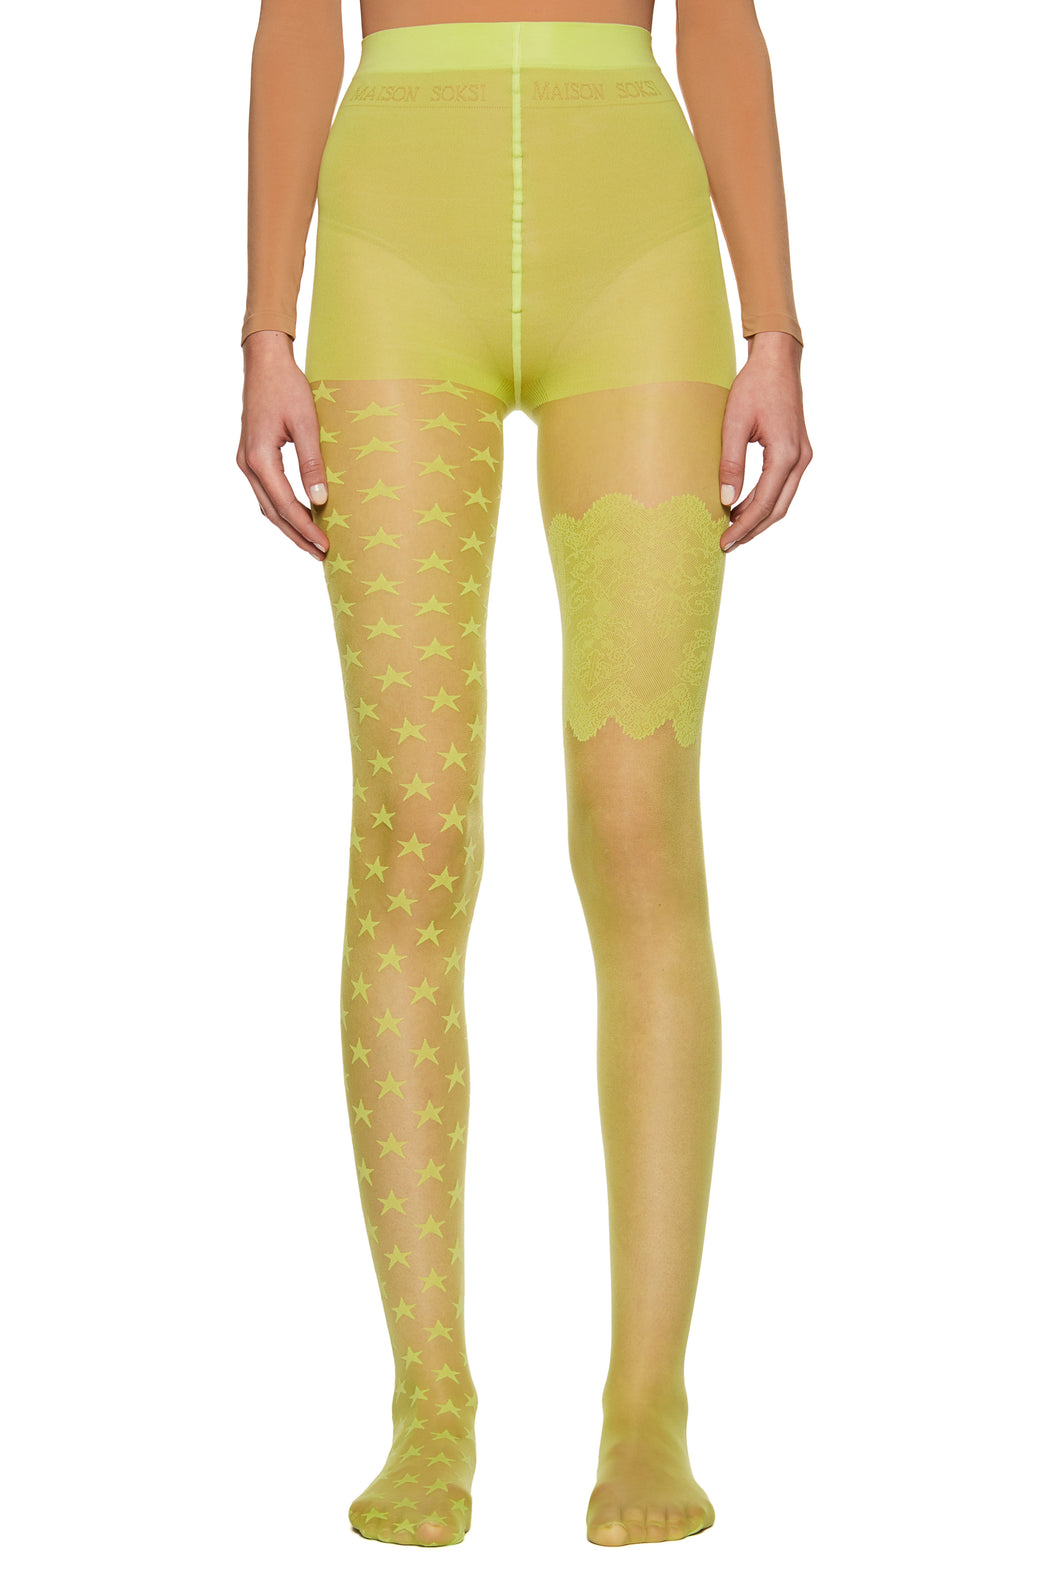 Lime 'Classic' Tights